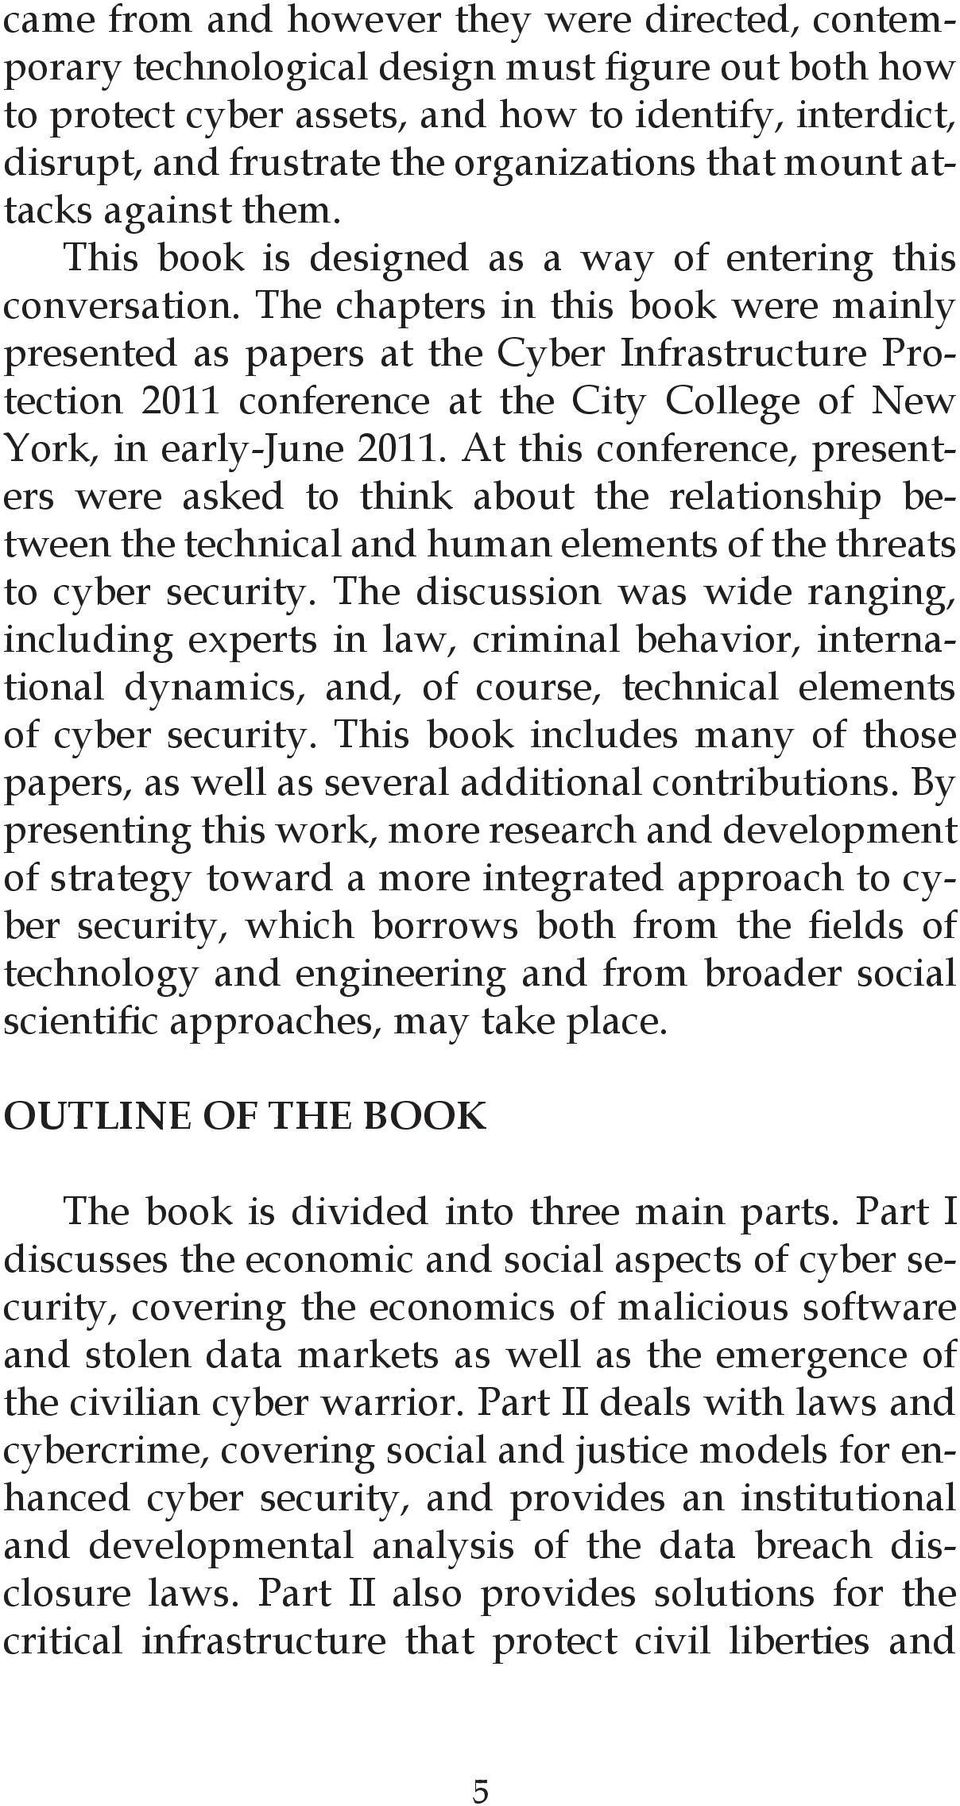 The chapters in this book were mainly presented as papers at the Cyber Infrastructure Protection 2011 conference at the City College of New York, in early-june 2011.